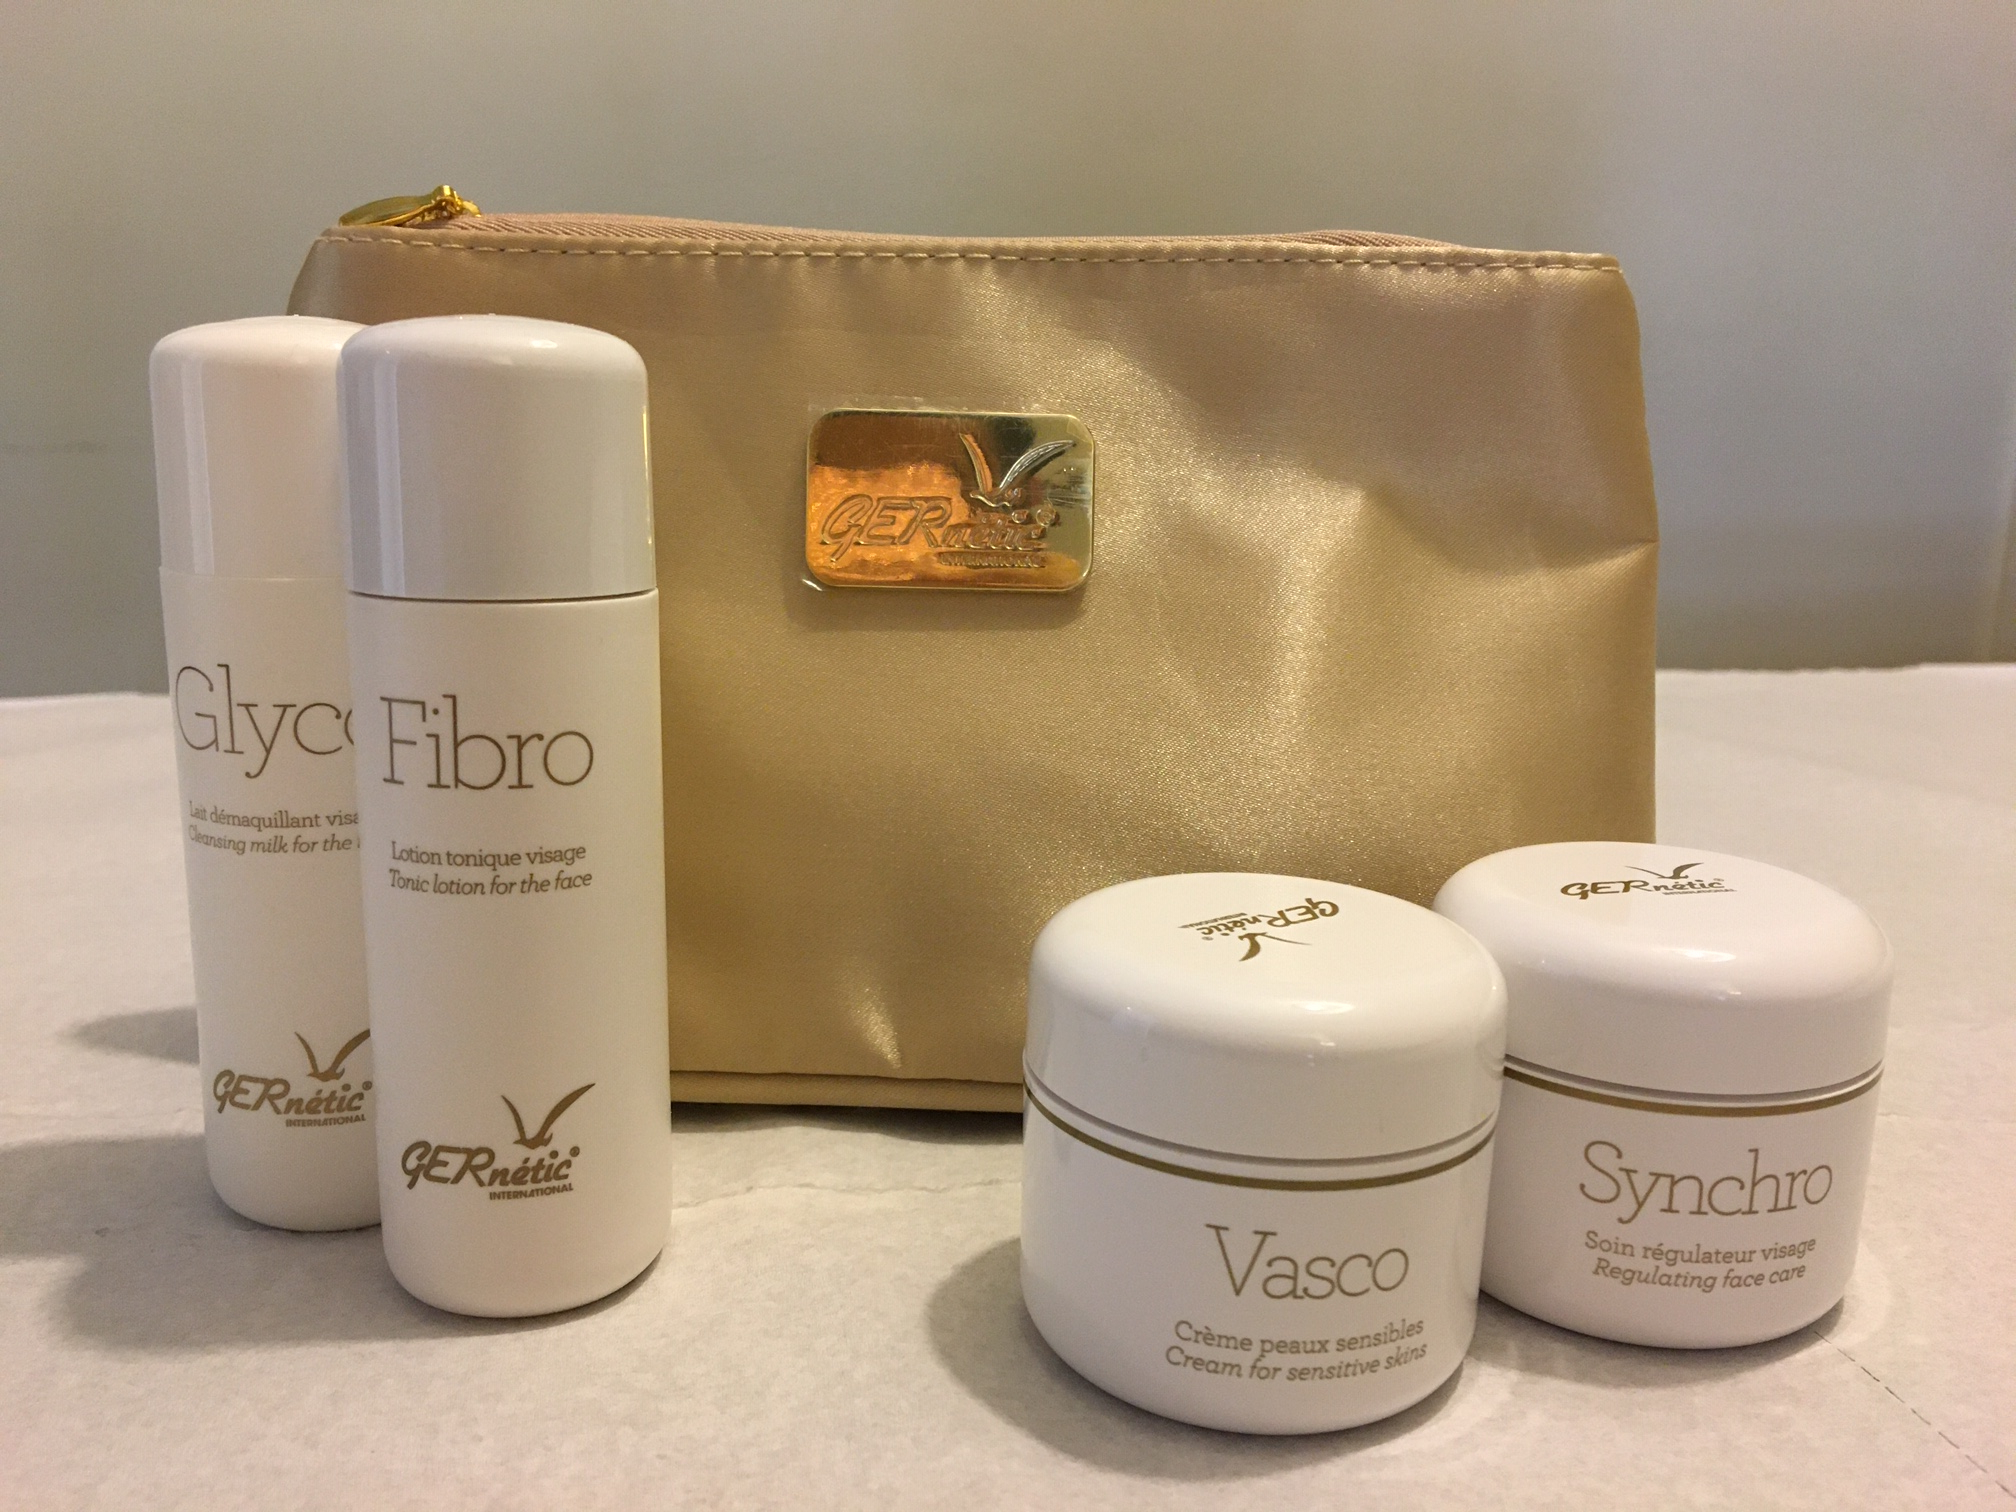 SET DECOUVERTE - glyco/fibro/synchro/vasco